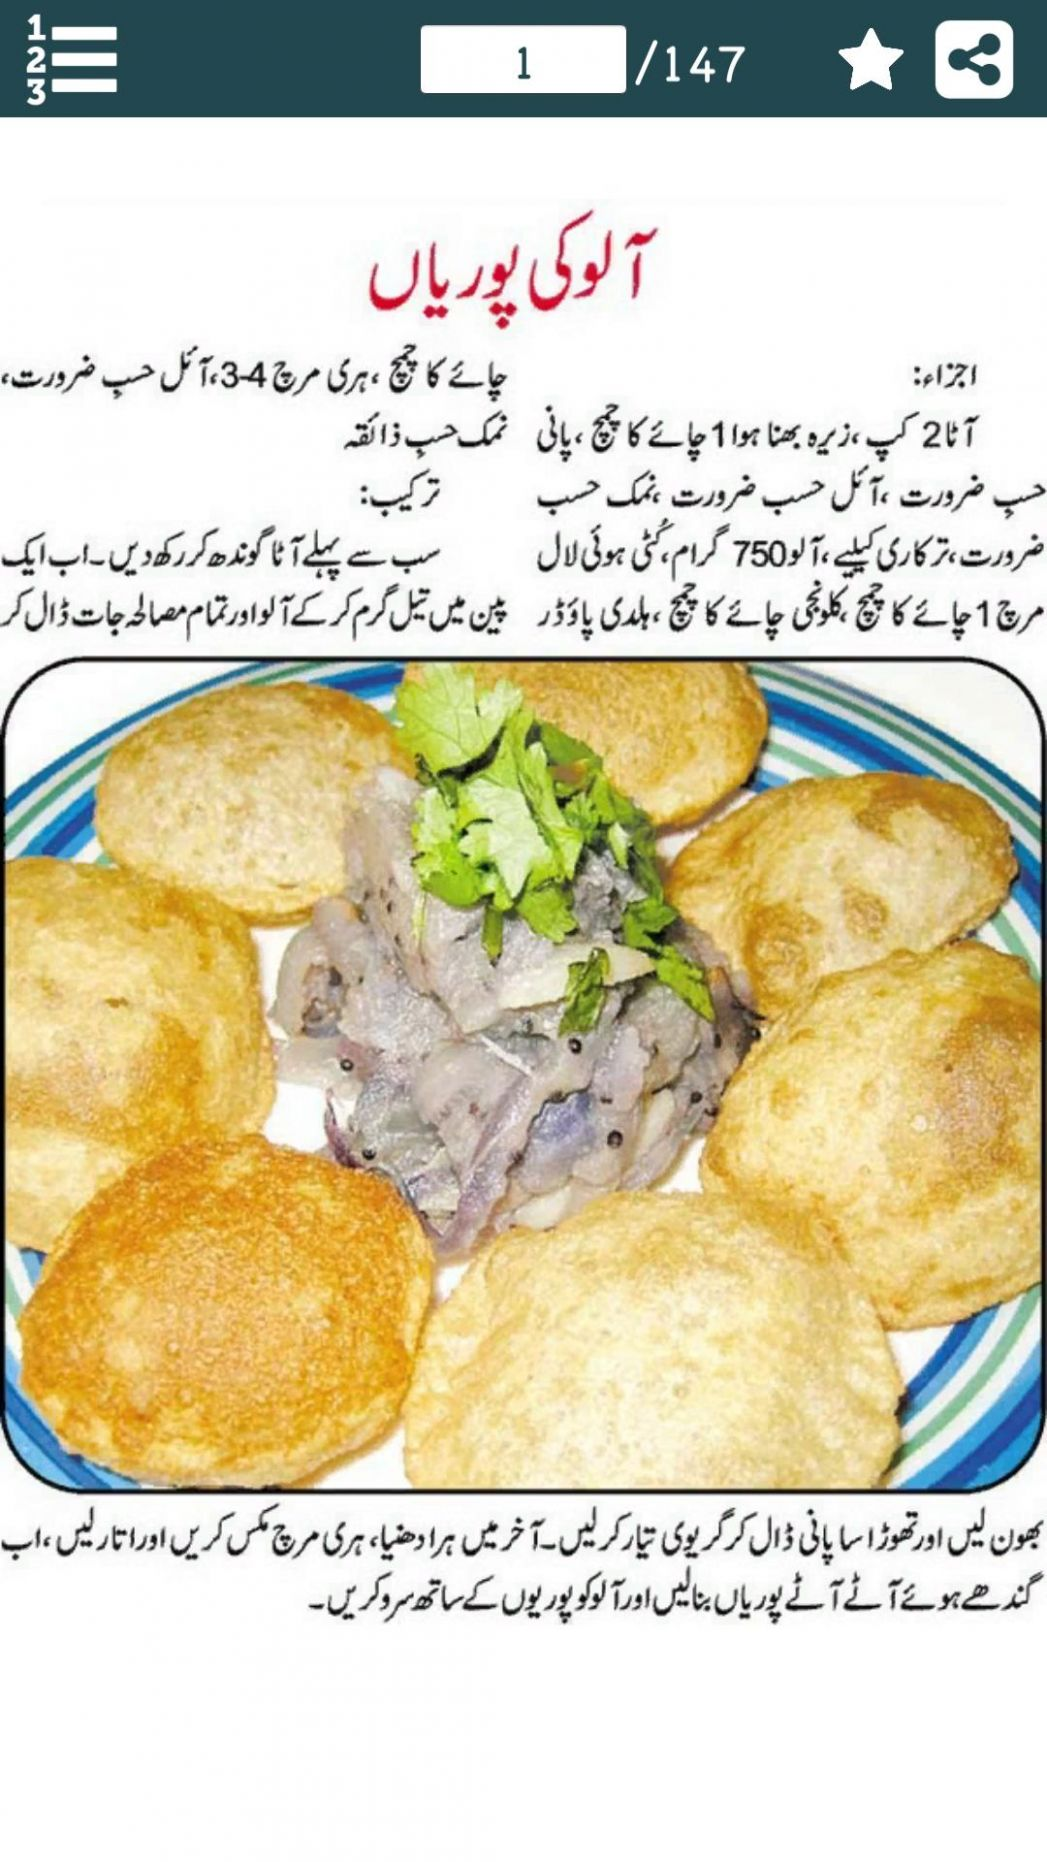 Ramadan Recipes in Urdu for Android - APK Download - Urdu Recipes Ramadan